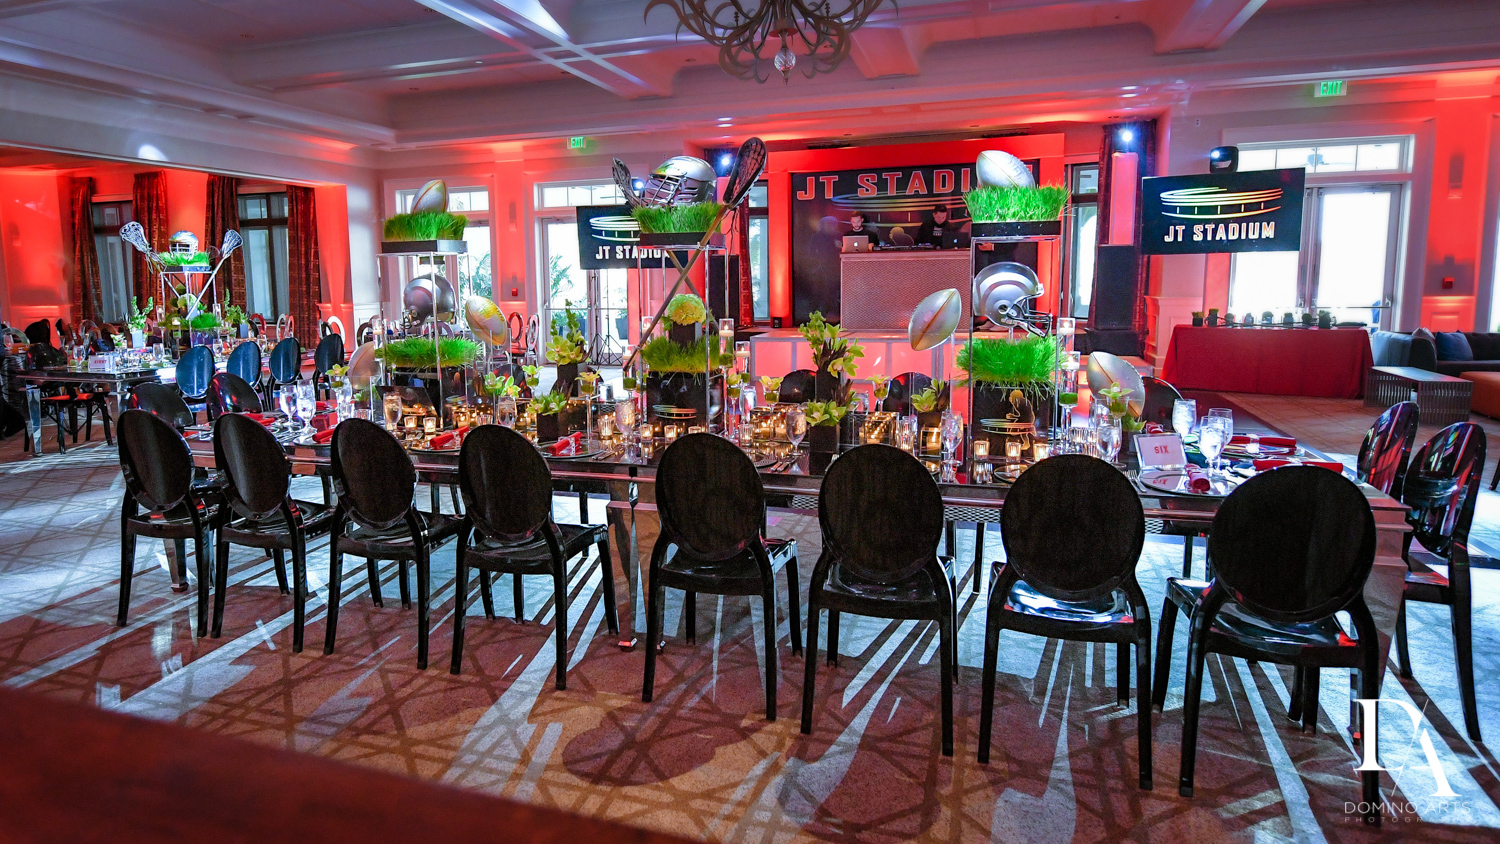 decor at Football Theme Bar Mitzvah at Temple Beth El and Royal Palm Yacht Club by Domino Arts Photography